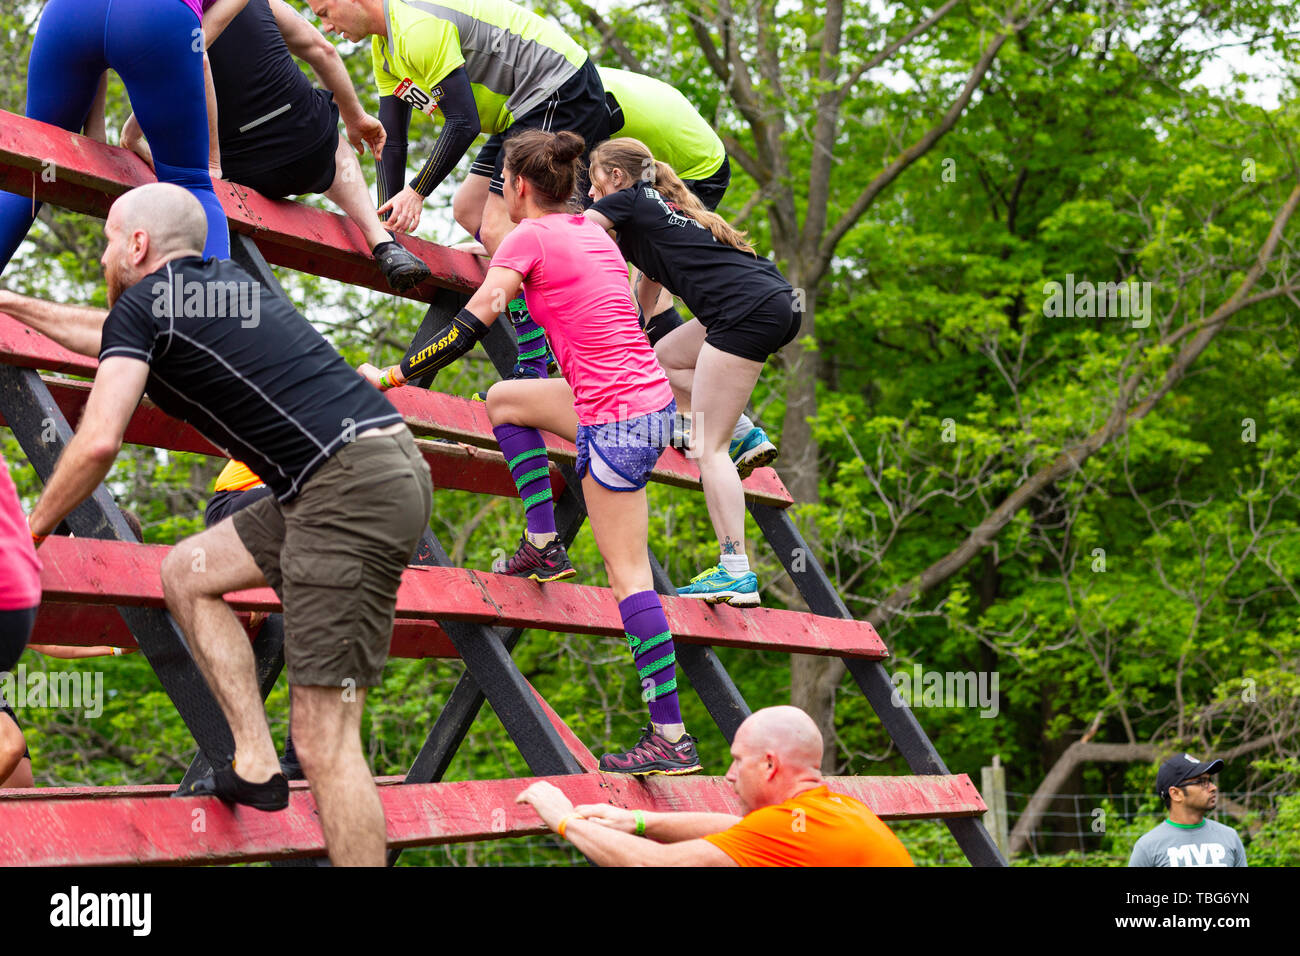 Rugged Maniac Obstacle Race Kitchener Ontario Canada June 01 2019 Stock Photo